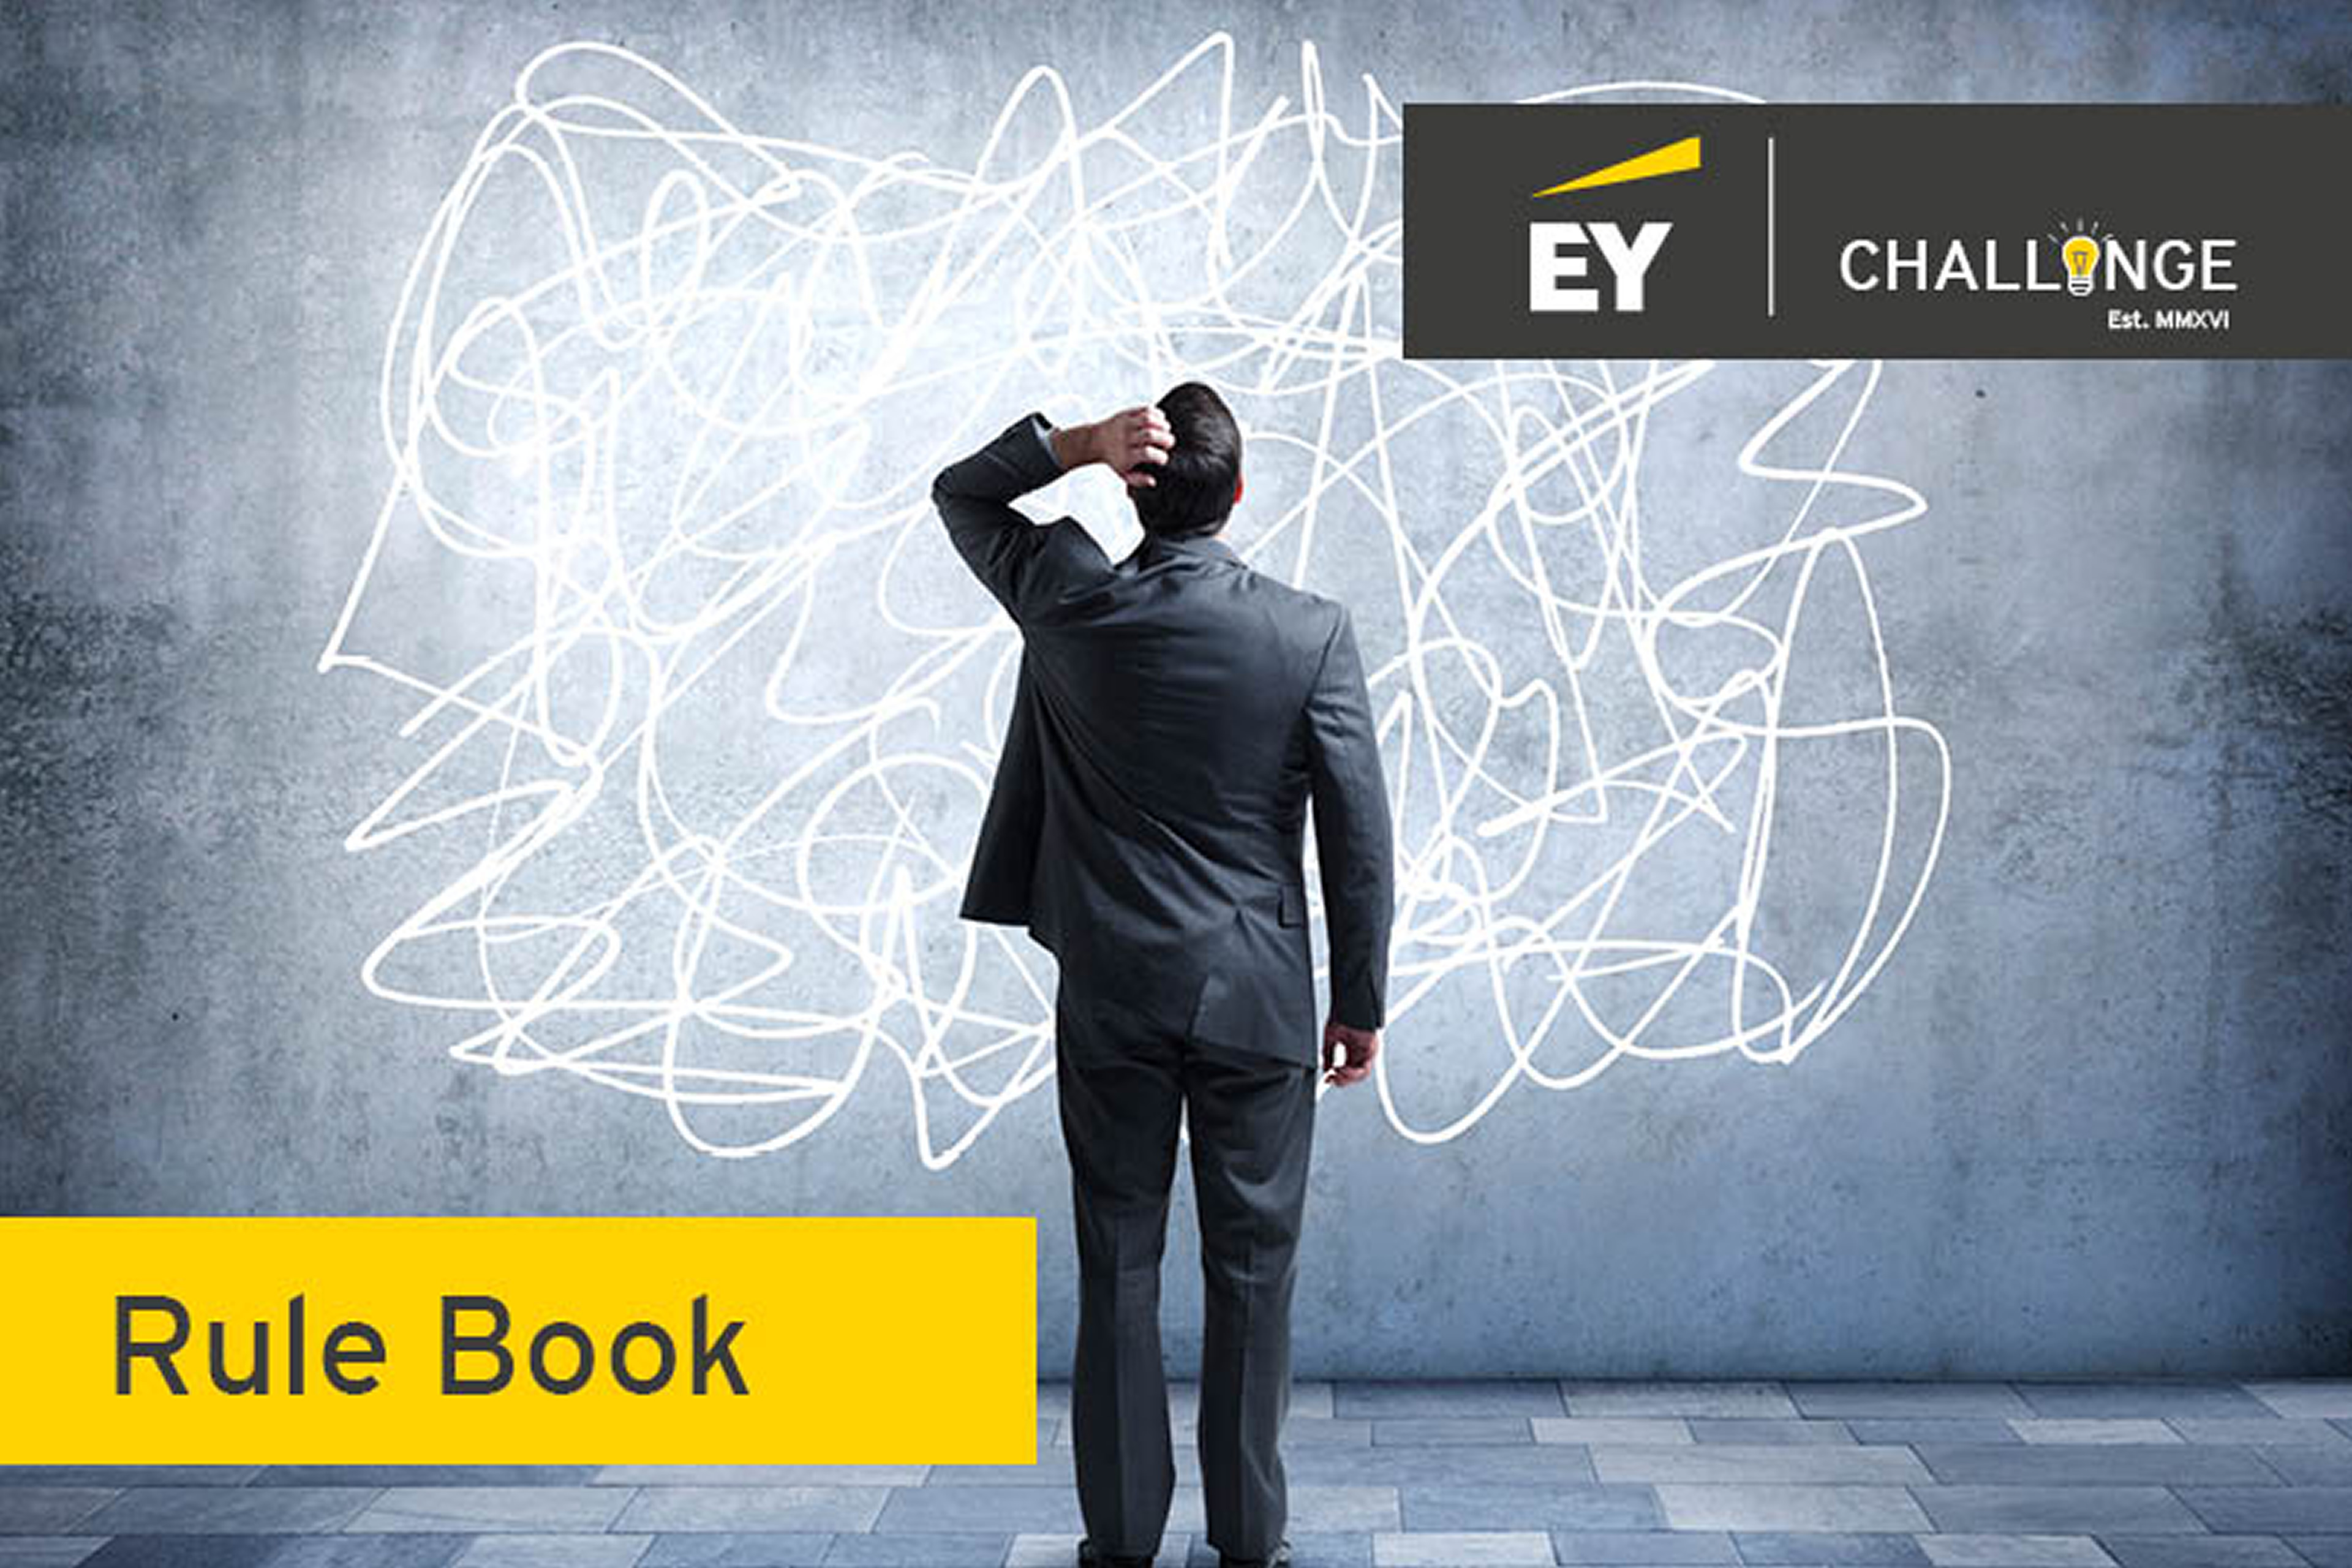 EY Challenge - Rule Book